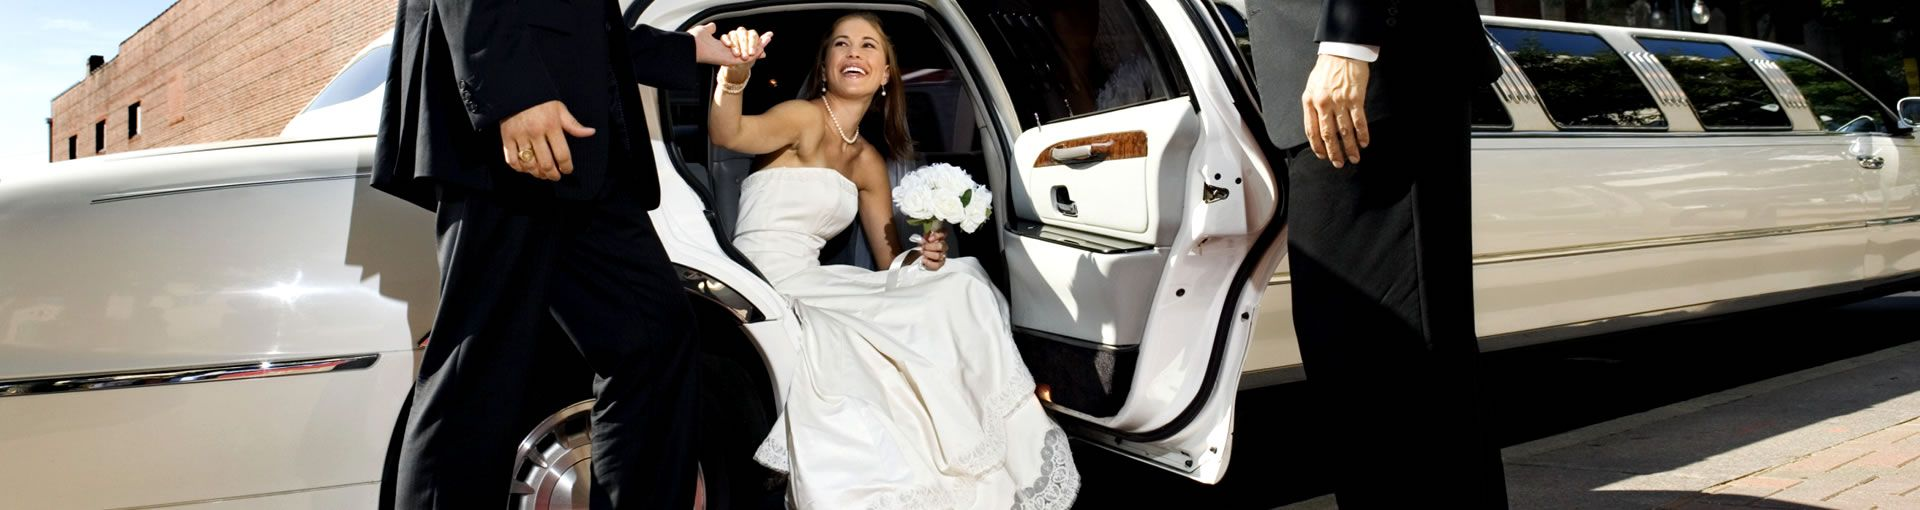 Weddings Transportation Dallas Wedding Limo Services